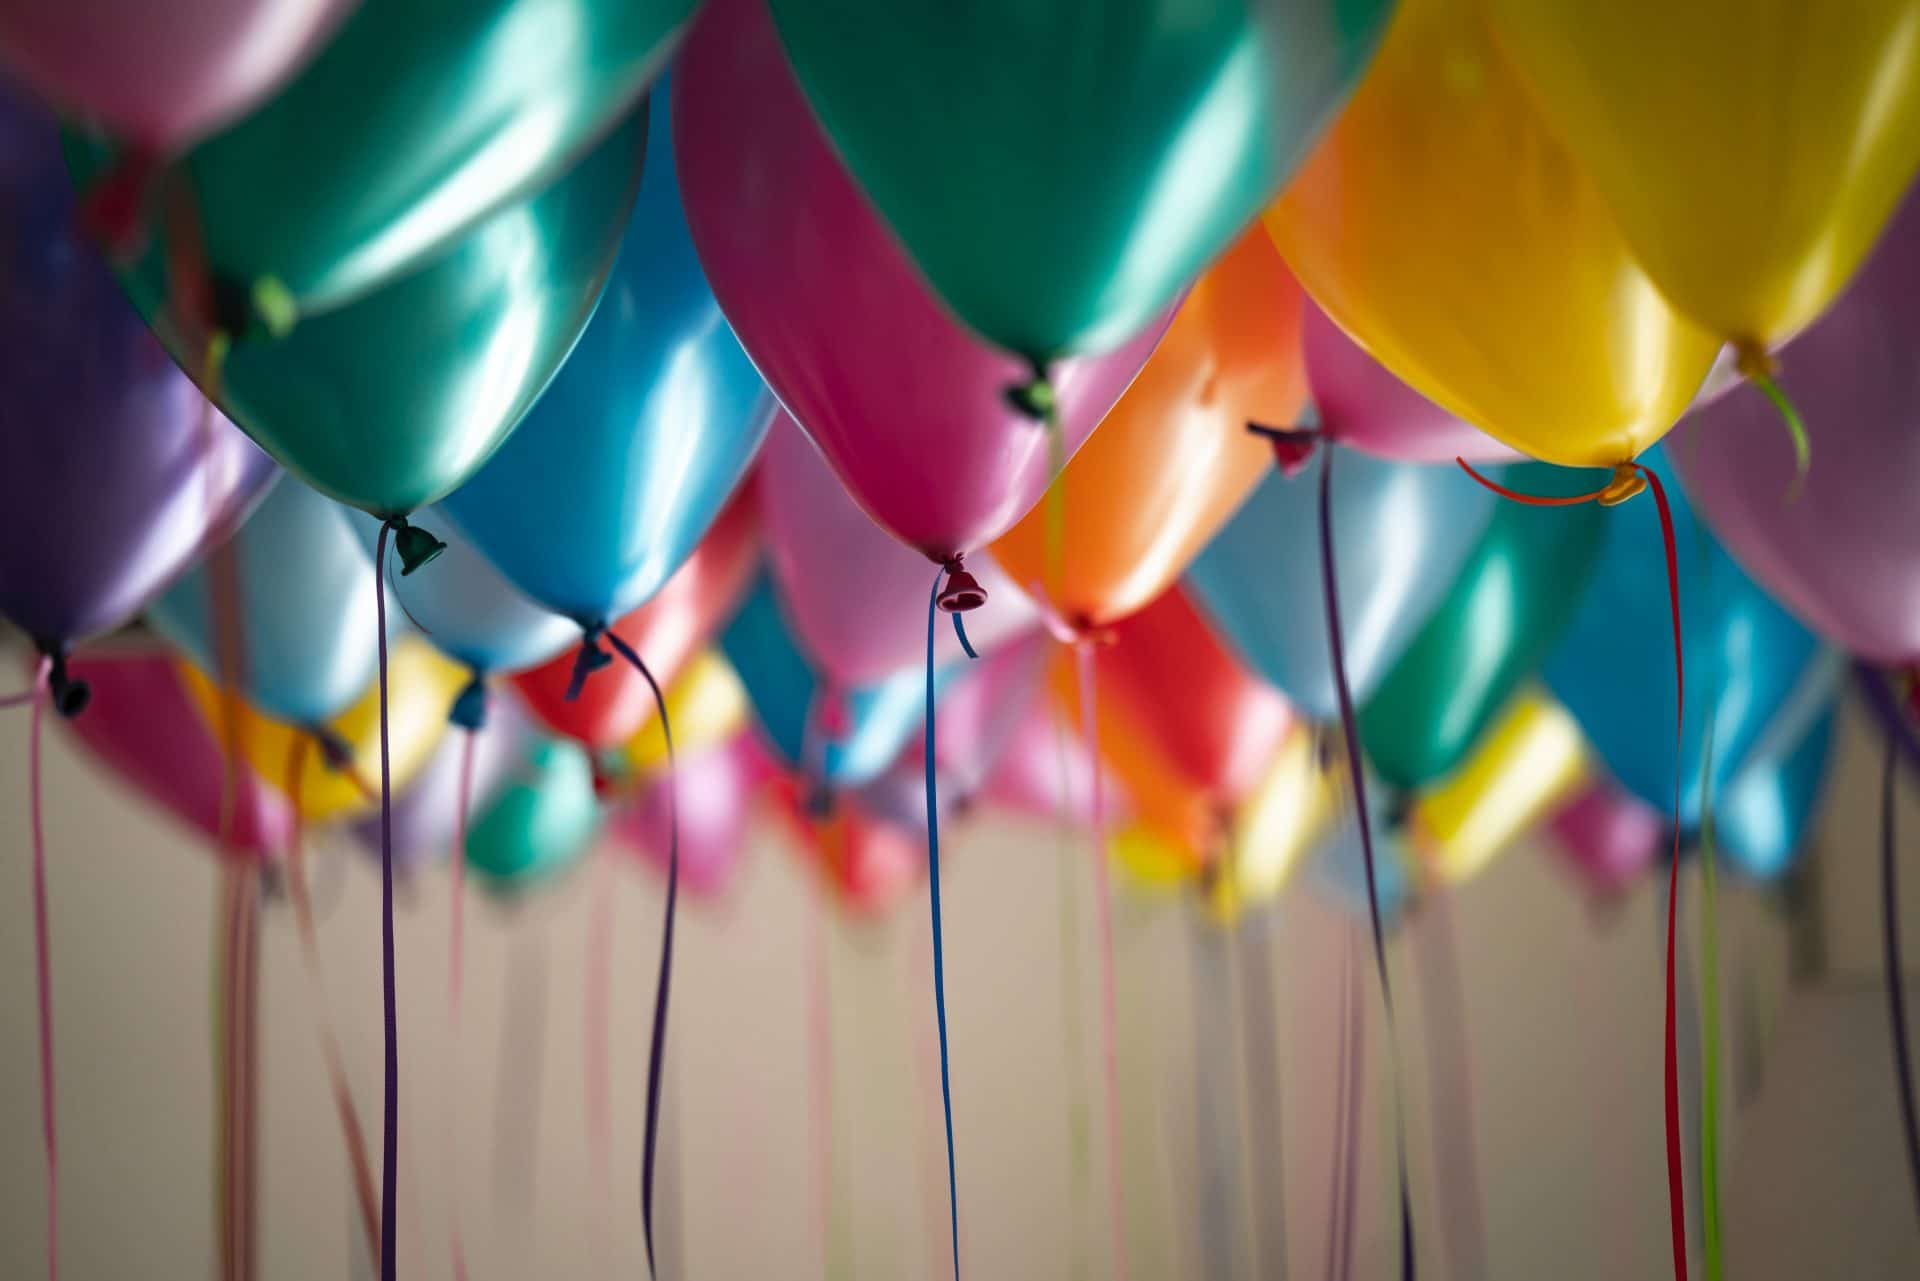 Floating balloons in different colors